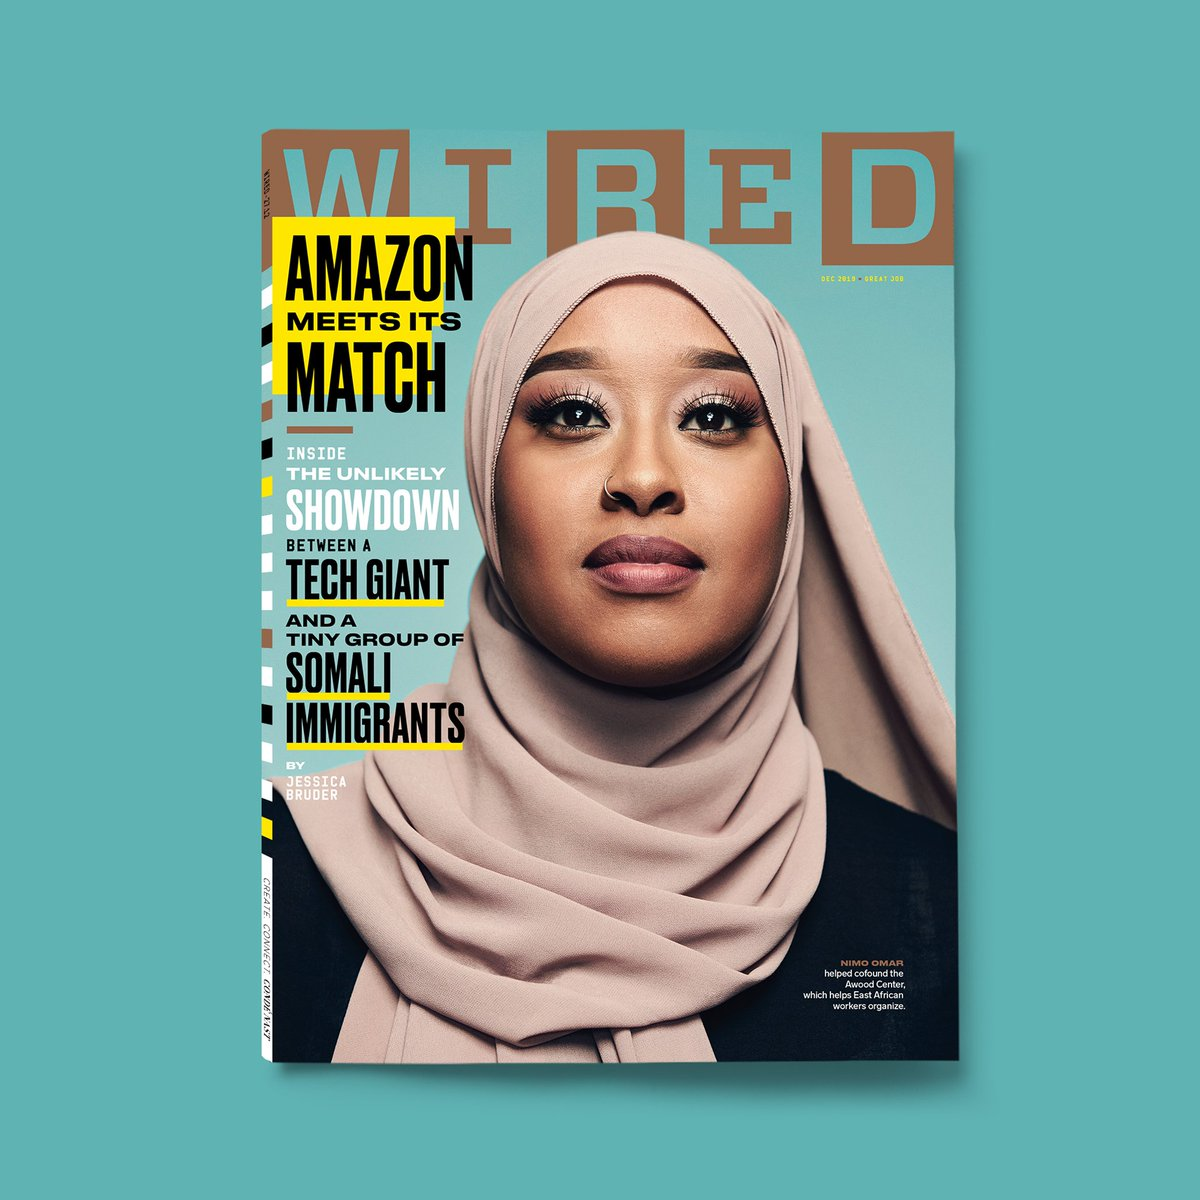 Our new @wired cover, featuring a riveting @jessbruder  feature on the Somali immigrants who were actually able to bring Amazon to the negotiating table. #mustread https://t.co/peyoVY7Ob5 https://t.co/S4RNAvsIsp